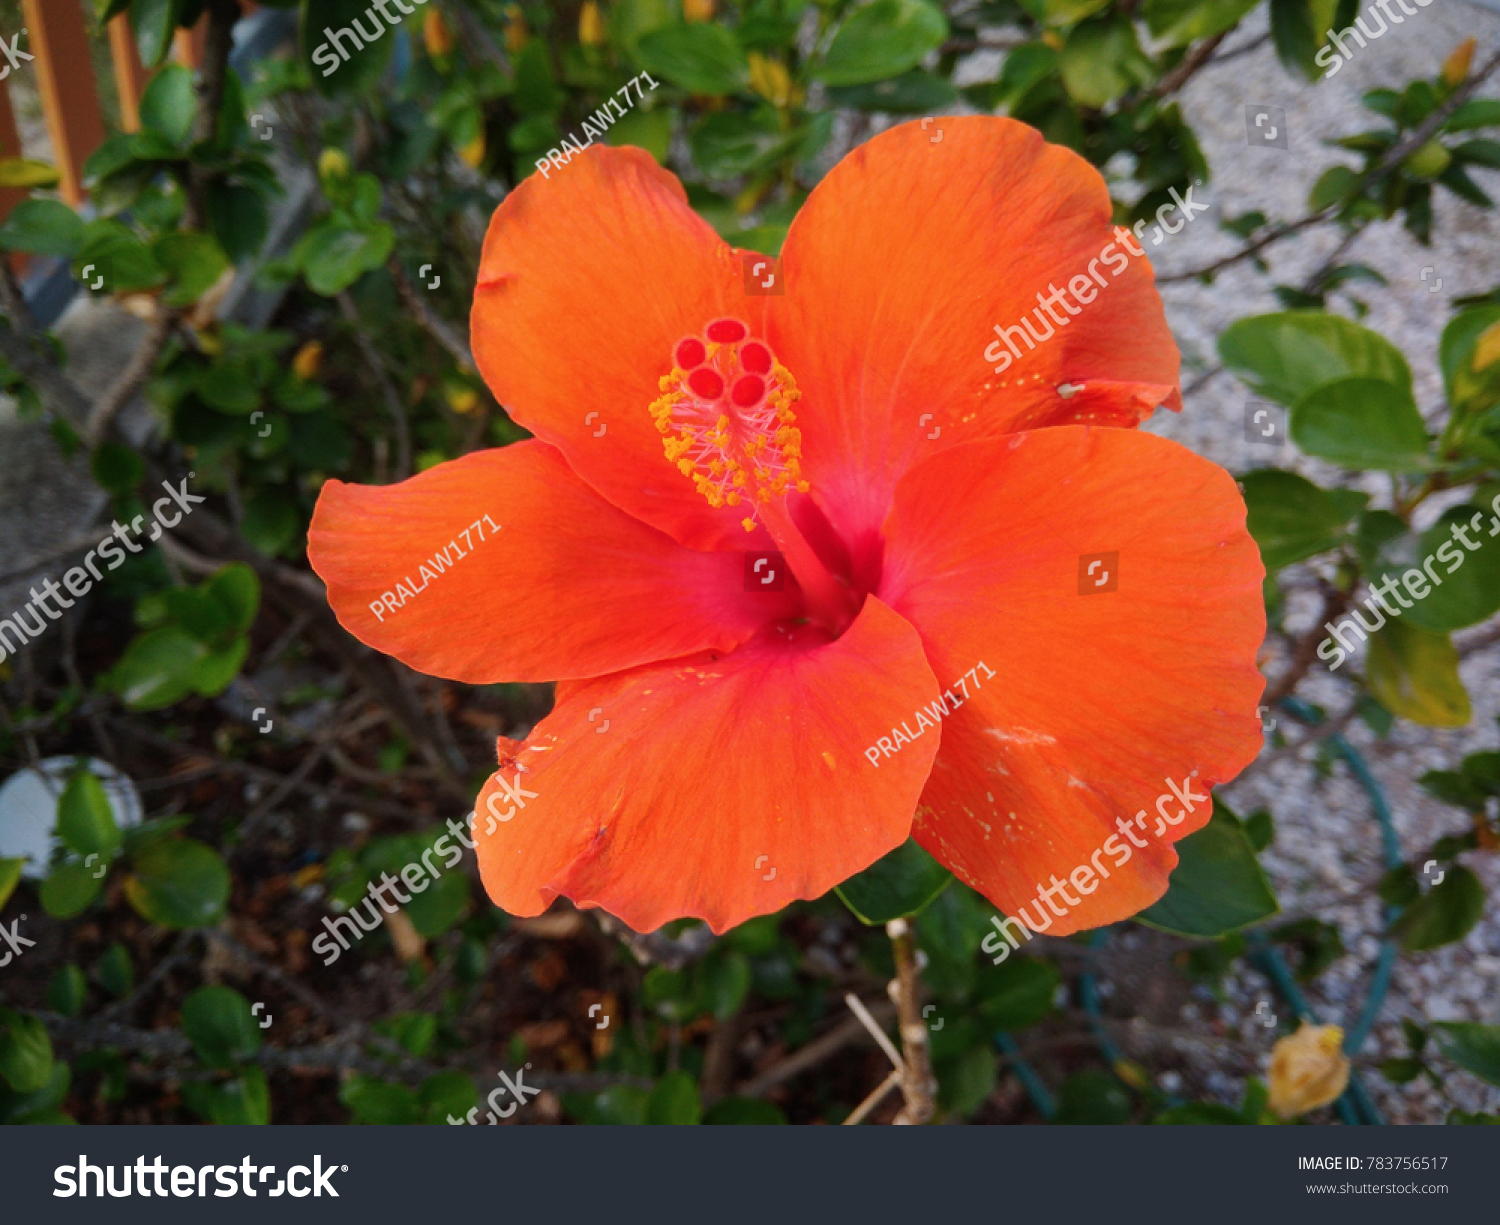 This Flower Name Chaba Flower Thai Stock Photo Edit Now 783756517